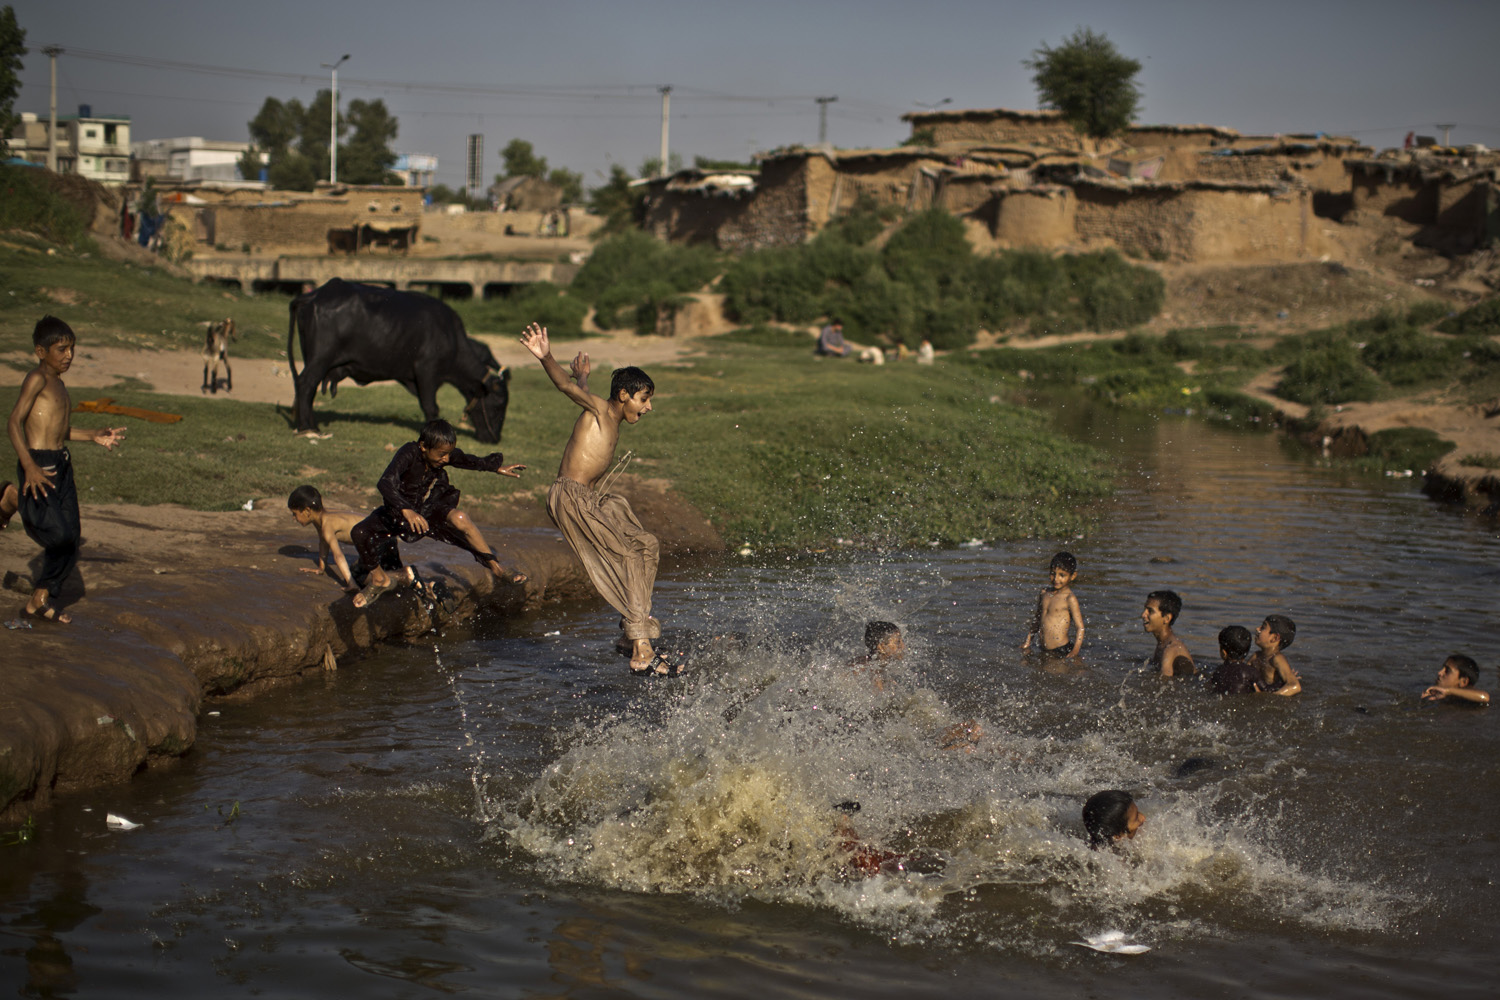 An Afghan refugee boy jumps into the water while he and others swim in a polluted stream to cool off as the temperature rises, on the outskirts of Islamabad, Pakistan on May 28, 2014.